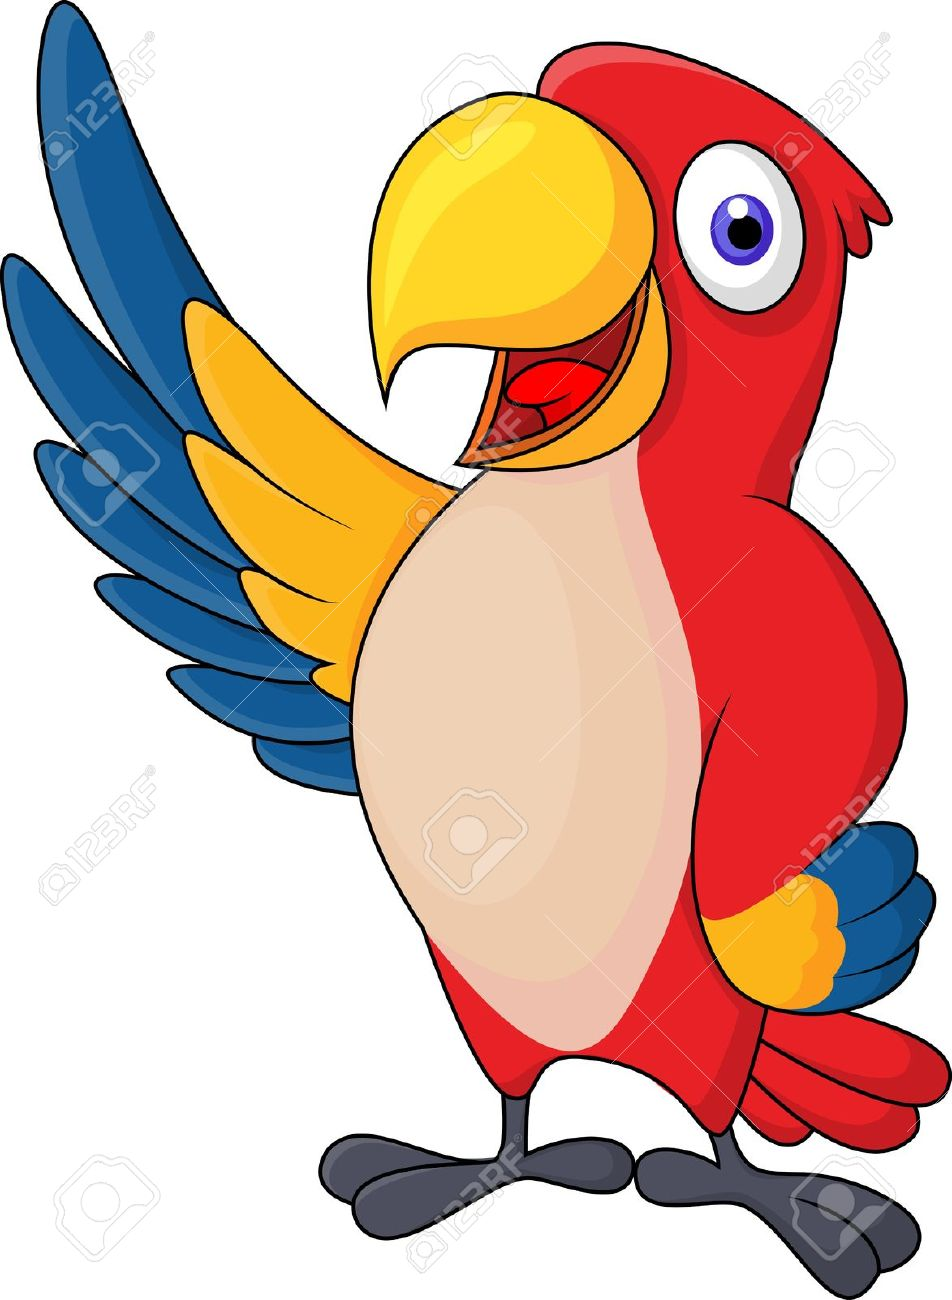 Macaw clipart #15, Download drawings